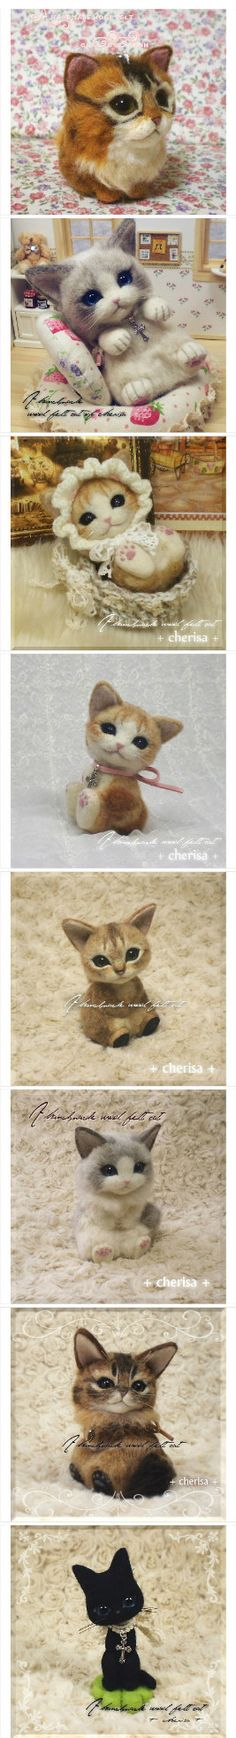 Felt cloth cat models